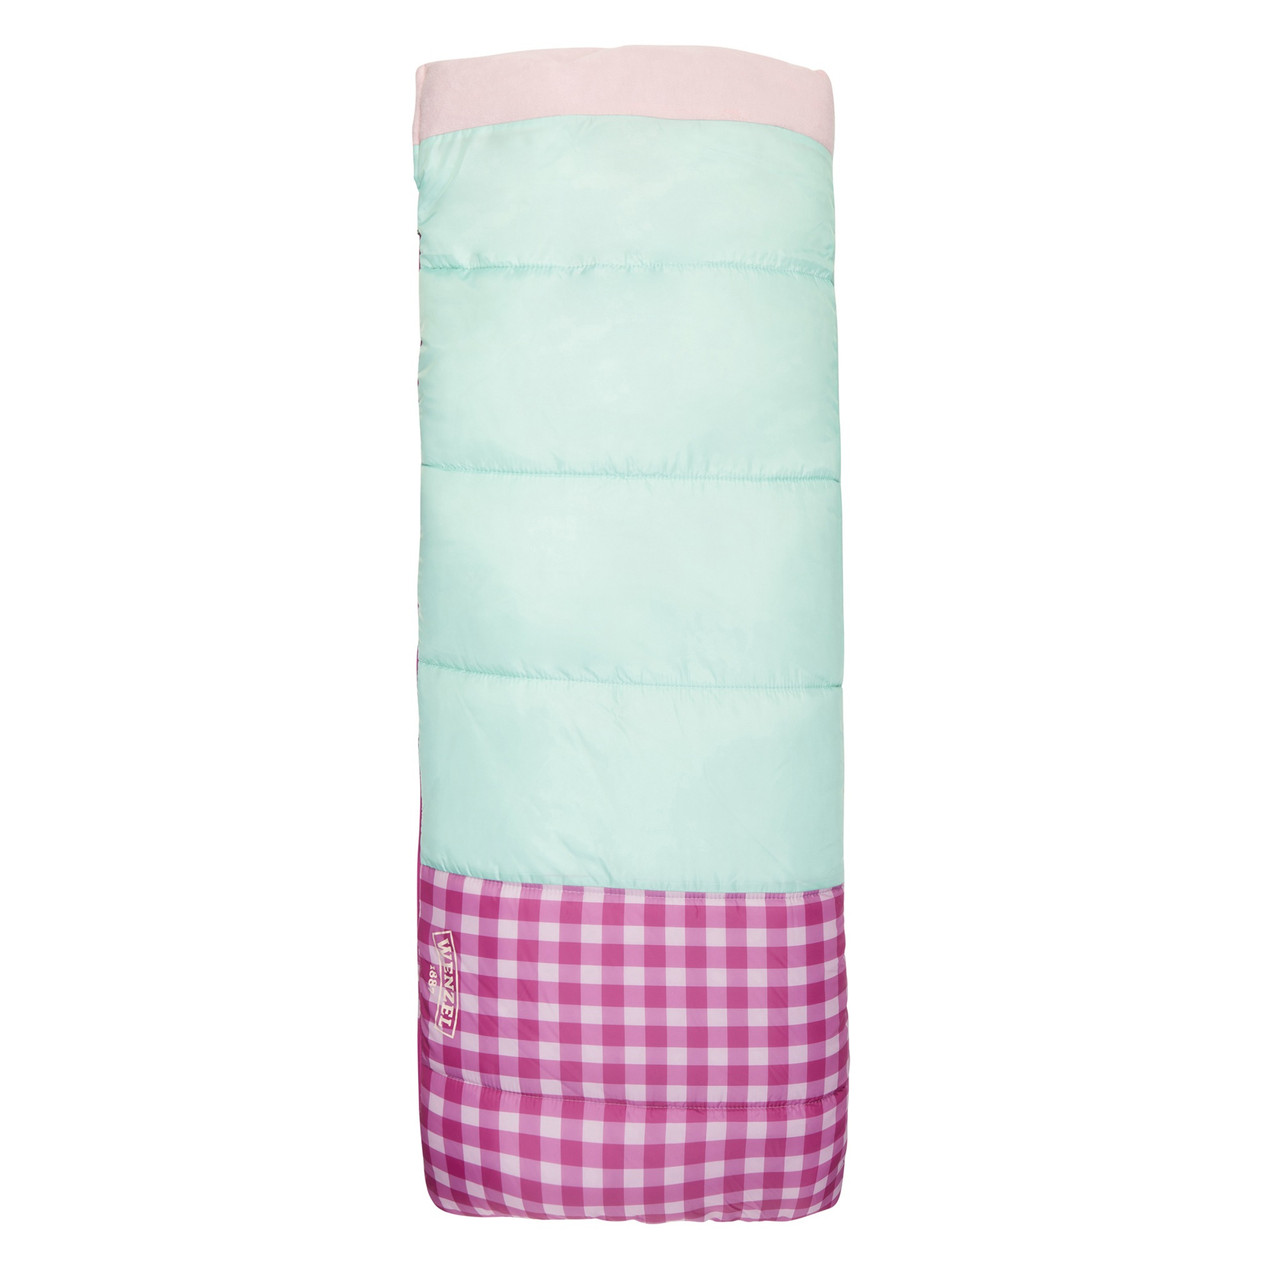 Wenzel Sapling Youth Sleeping Bag, pink, shown fully zipped